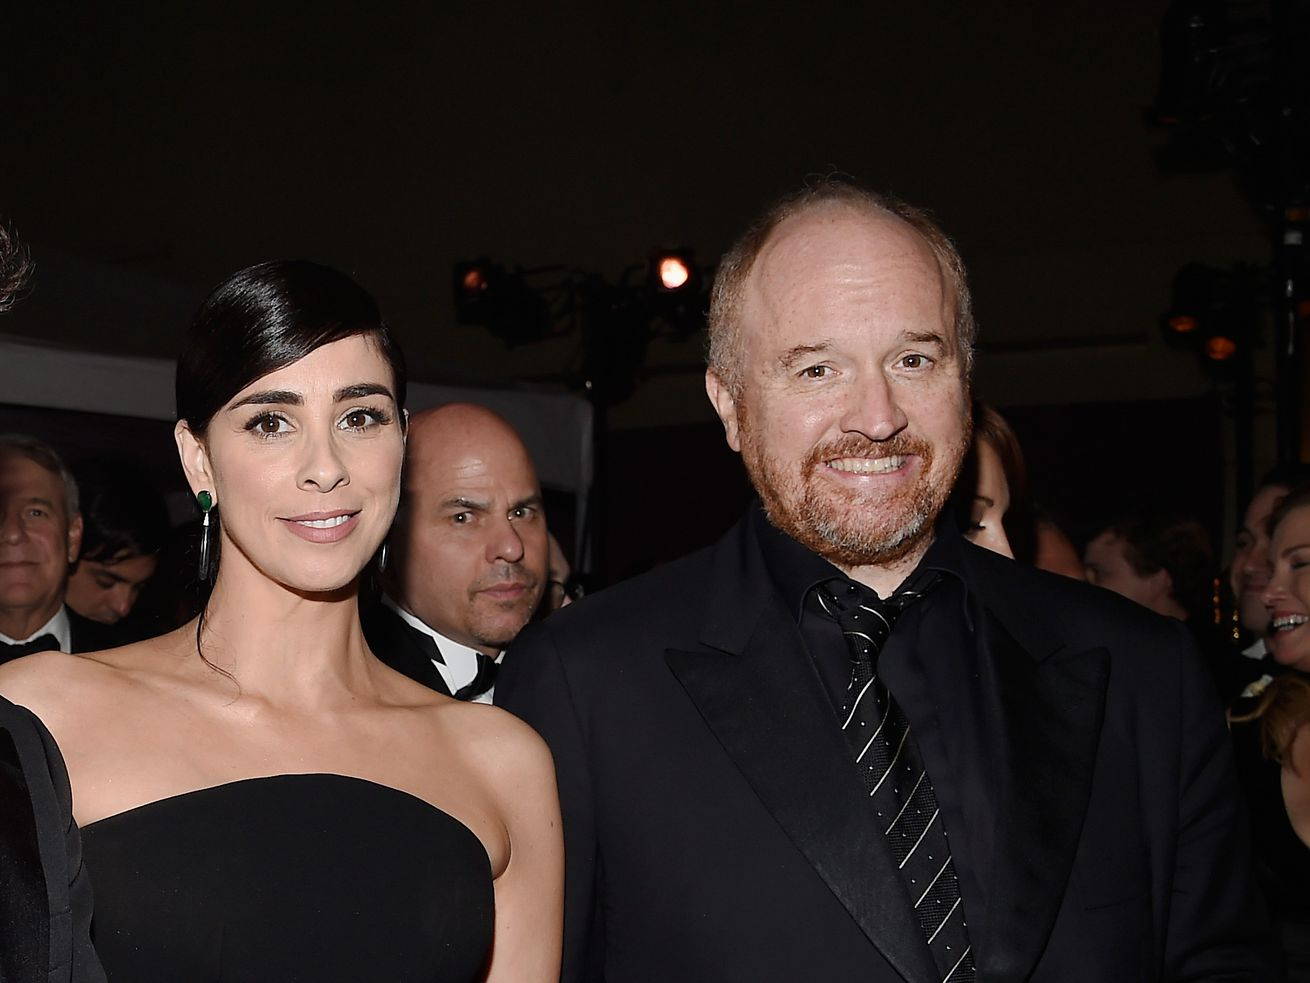 Sarah Silverman and Louis C.K. at the 88th Annual Academy Awards Governors Ball in 2016.